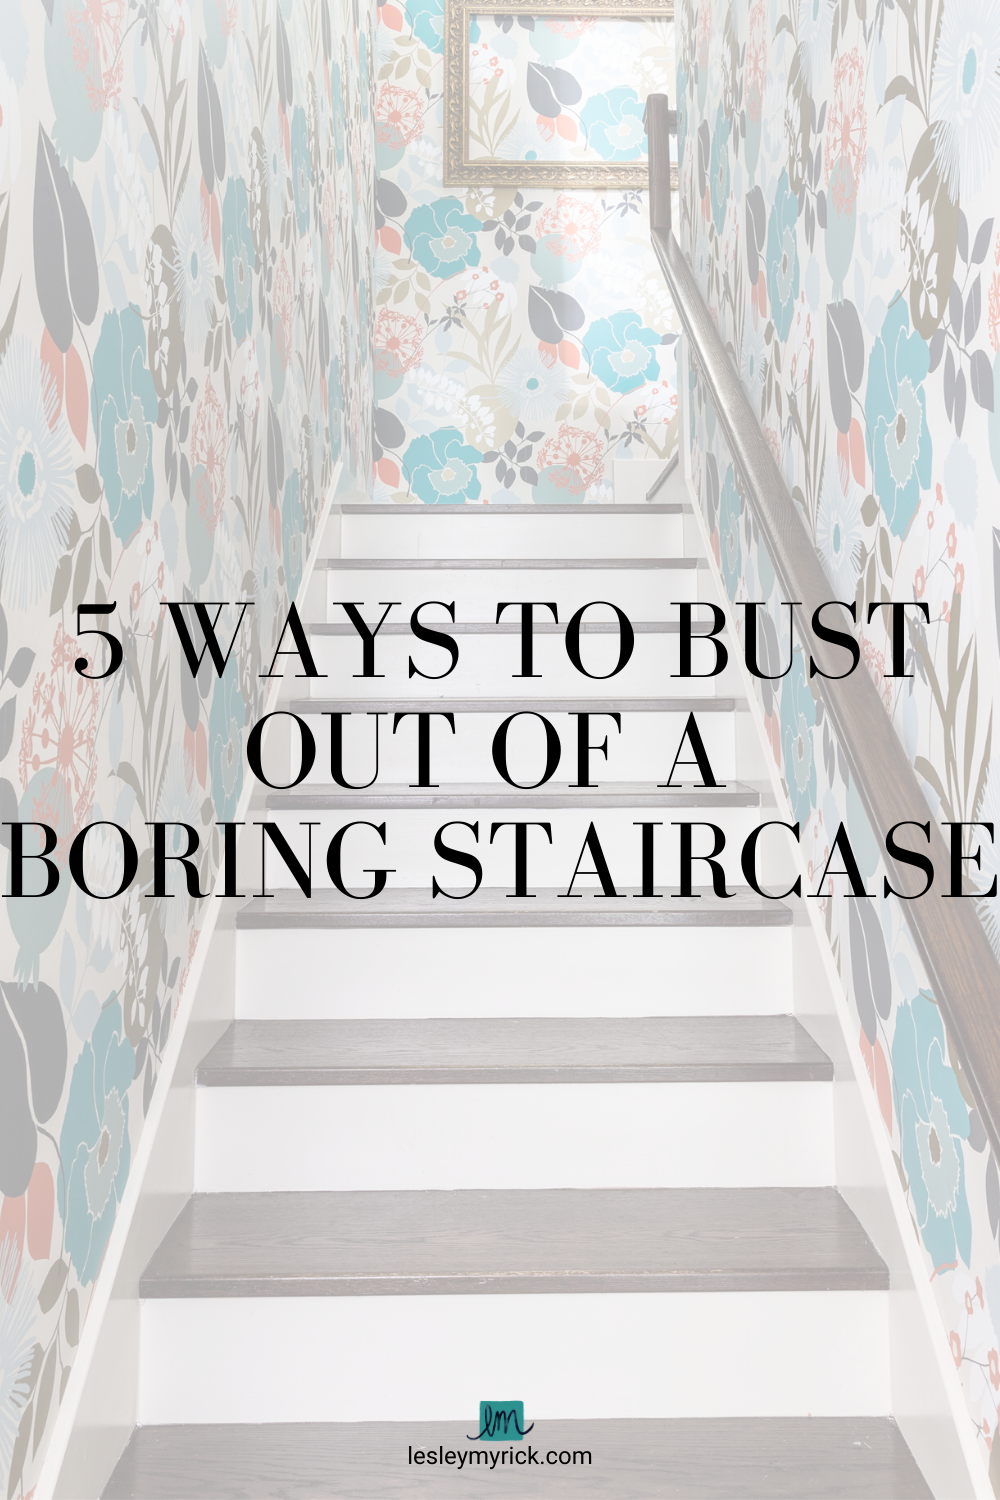 5 ways to bust out of a boring staircase